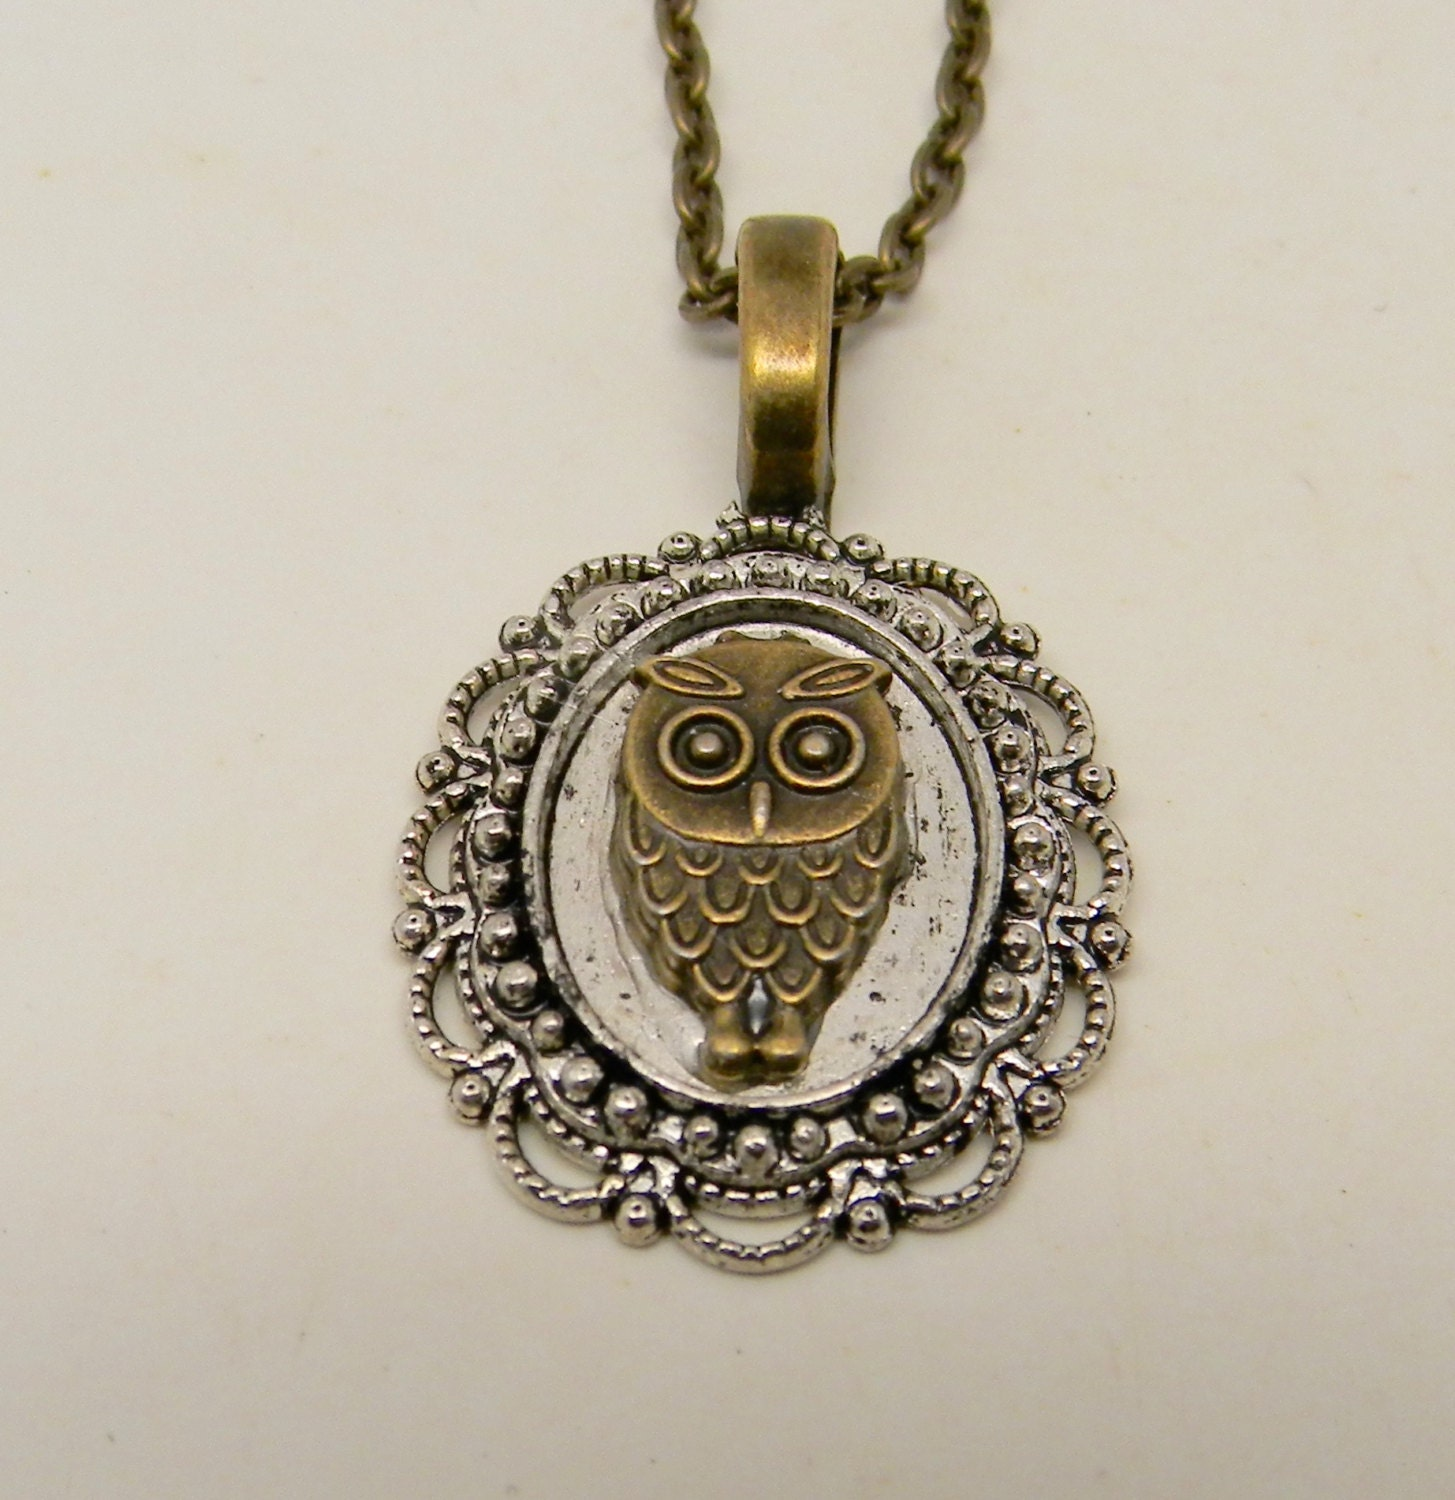 Steampunk Owl Pendant Necklace Steampunk Jewelry. Popcorn Watches. Diamond Chains. Black Bands. Platinum Wedding Band Sets. Cute Gold Chains. 10000 Dollar Wedding Rings. Choker Pendant. Second Hand Wedding Rings